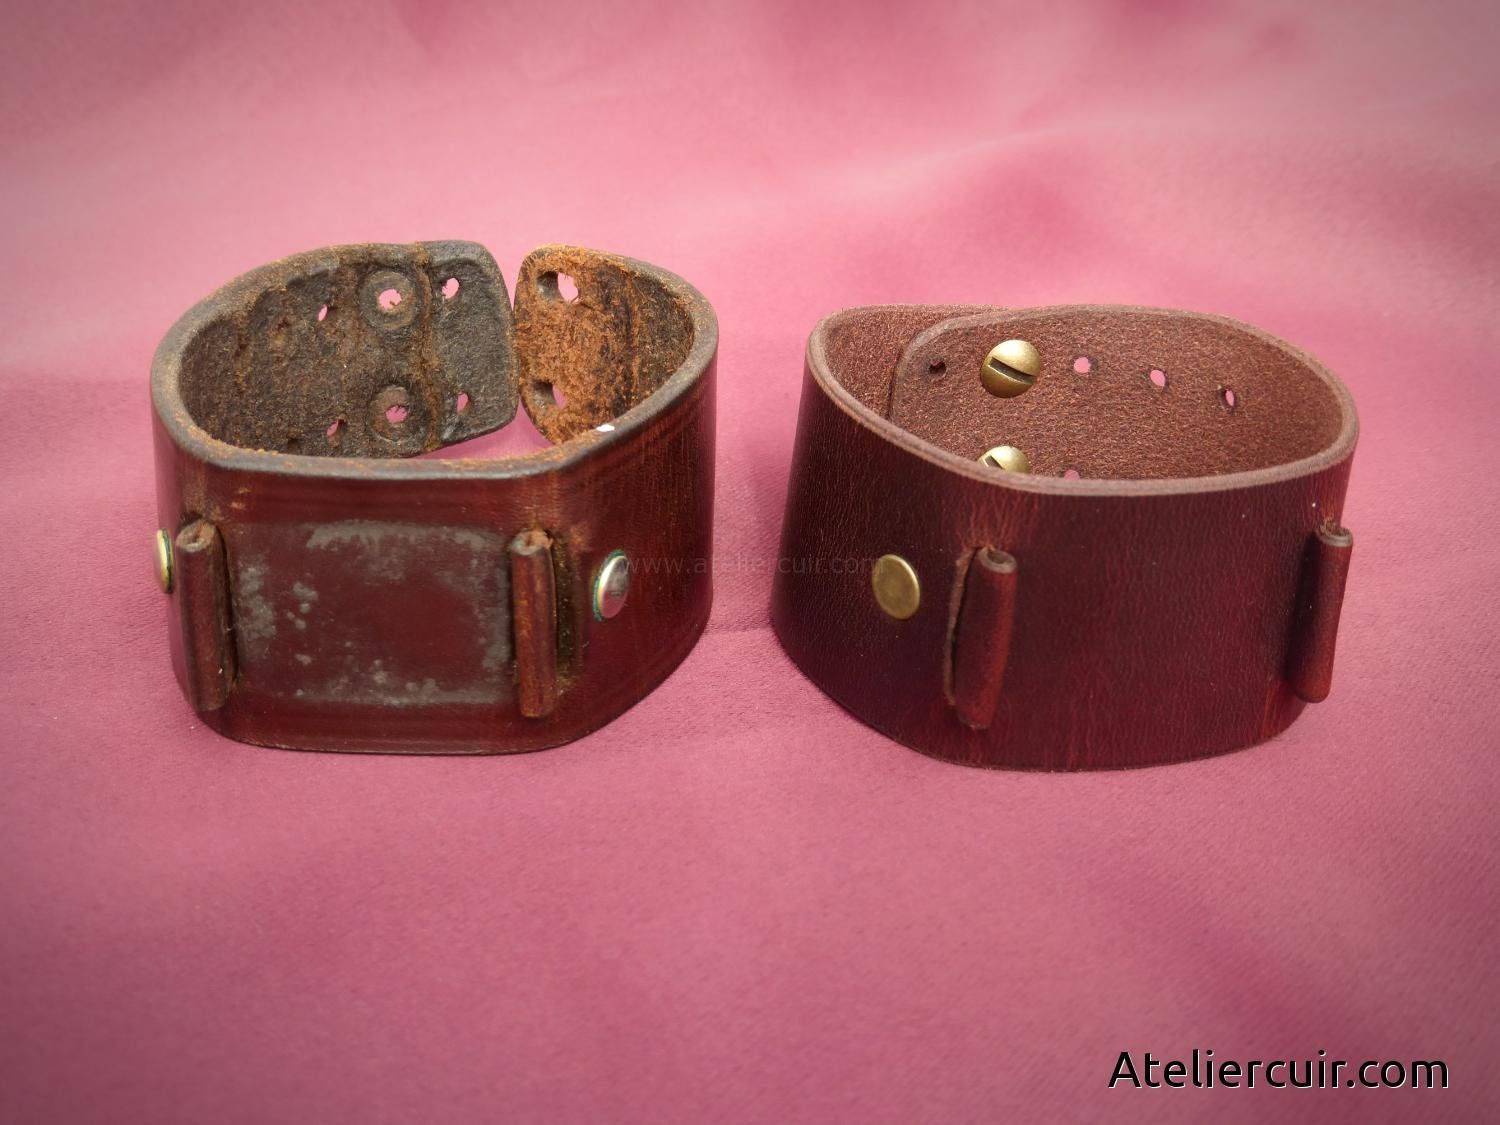 Reproduction d\'un bracelet montre en cuir abîmé, fourni par le ...